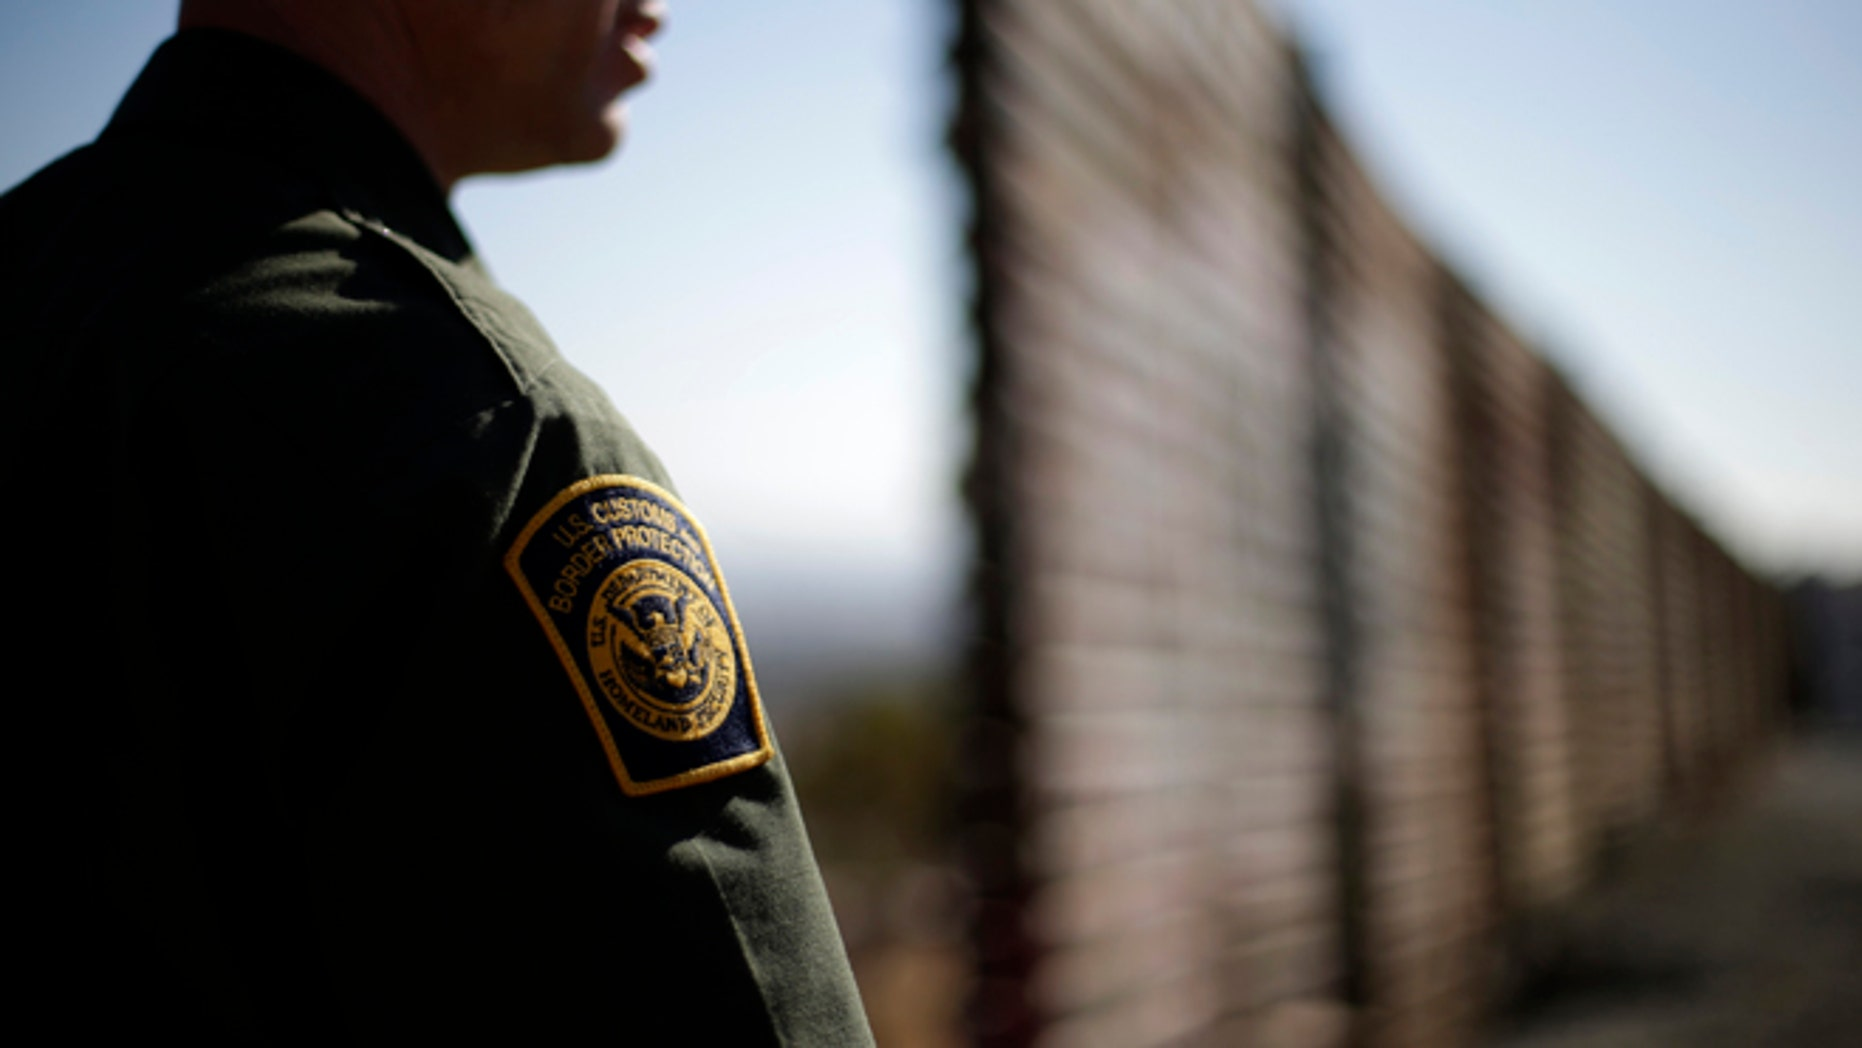 In this June 13, 2013 picture, U.S. Border Patrol agent Jerry Conlin looks to the north near where the border wall ends as is separates Tijuana, Mexico, left, and San Diego, right.  Illegal immigration into the United States would decrease by only 25 percent under a far-reaching Senate immigration bill, according to an analysis by the Congressional Budget Office that also finds the measure reduces federal deficits by billions. (AP Photo/Gregory Bull)